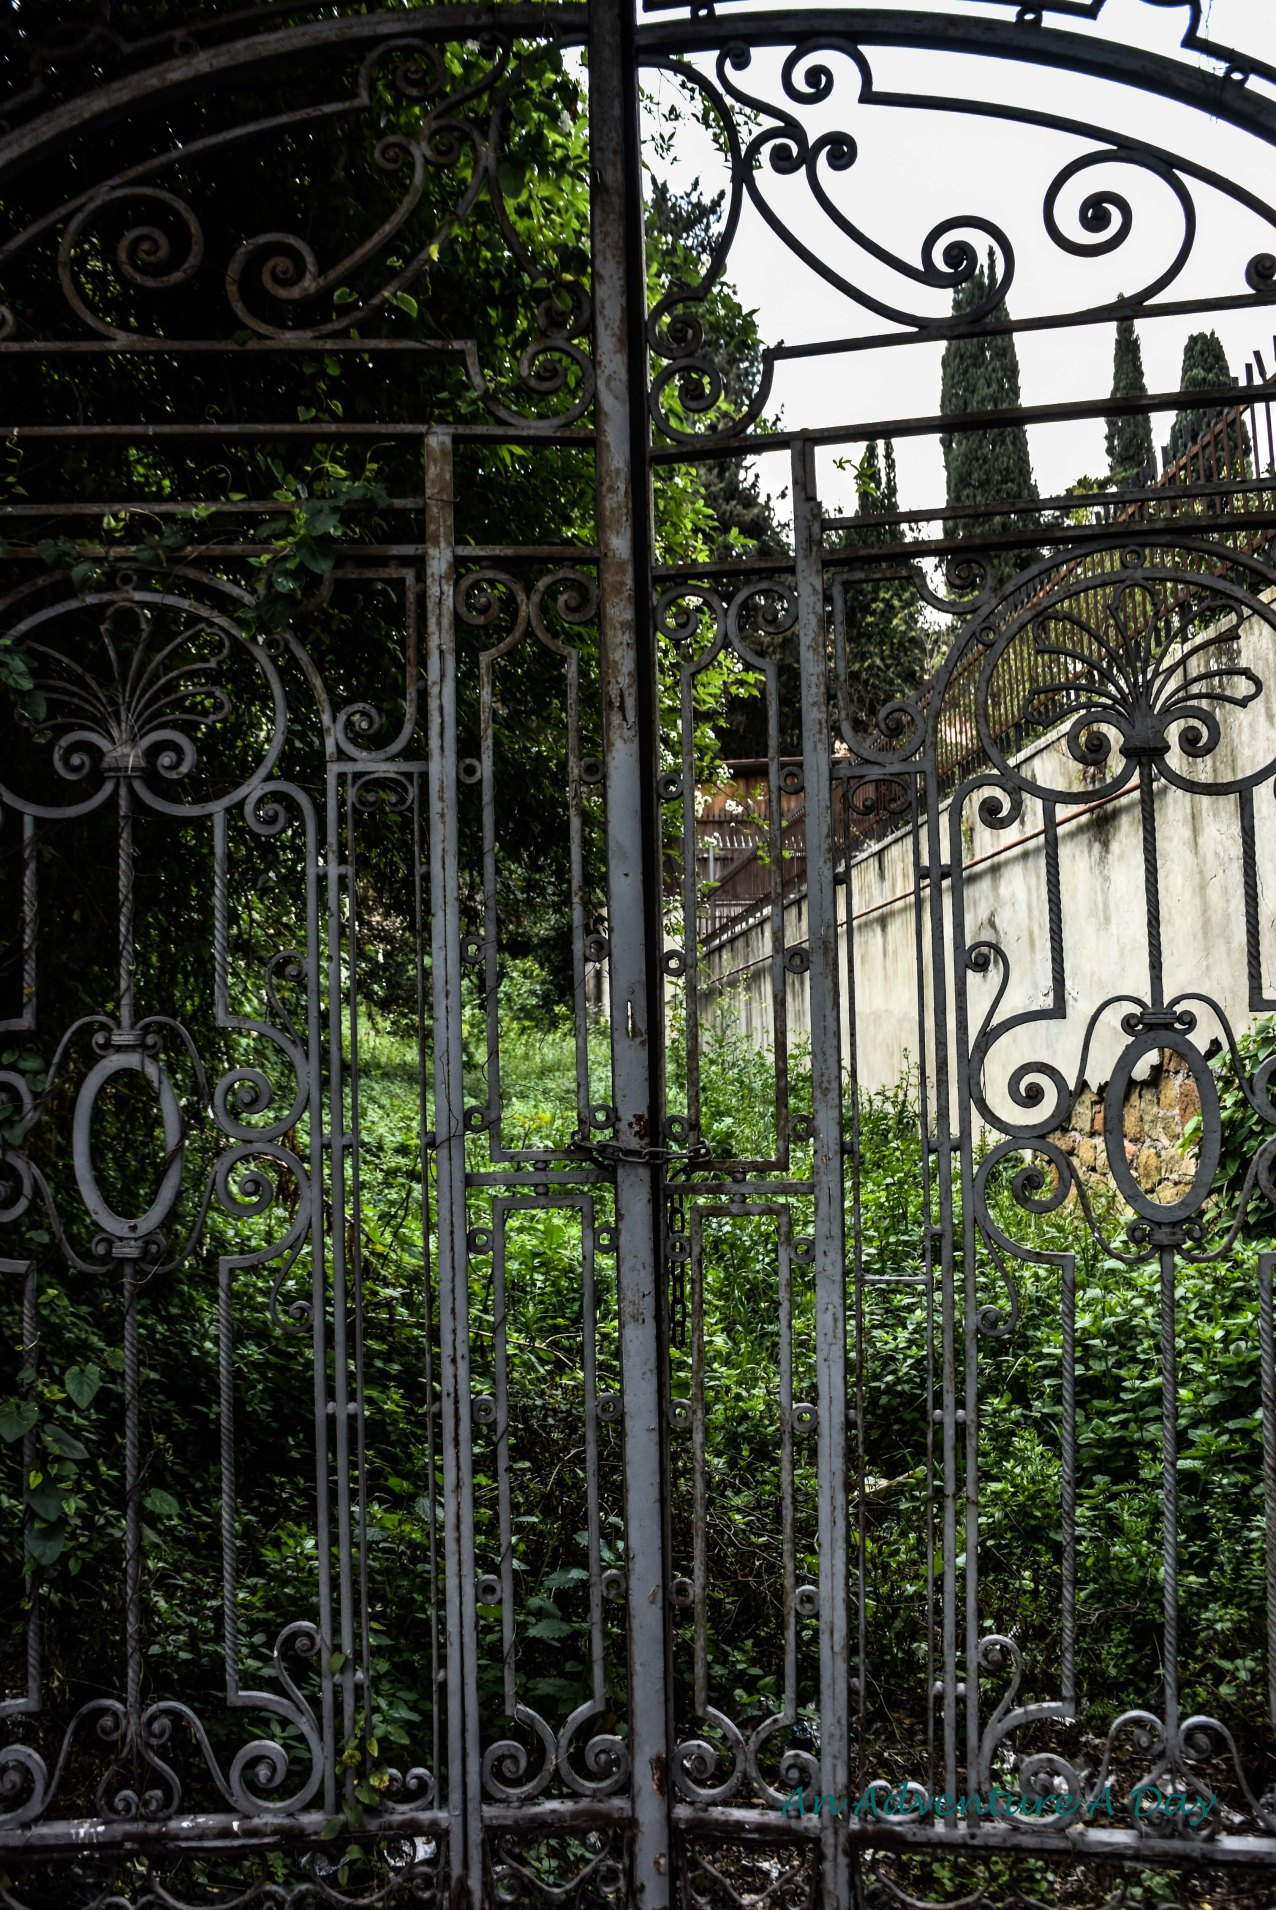 Does a locked gate keep us any more secure? Time passes, and the world passes us by behind the illusion of security.